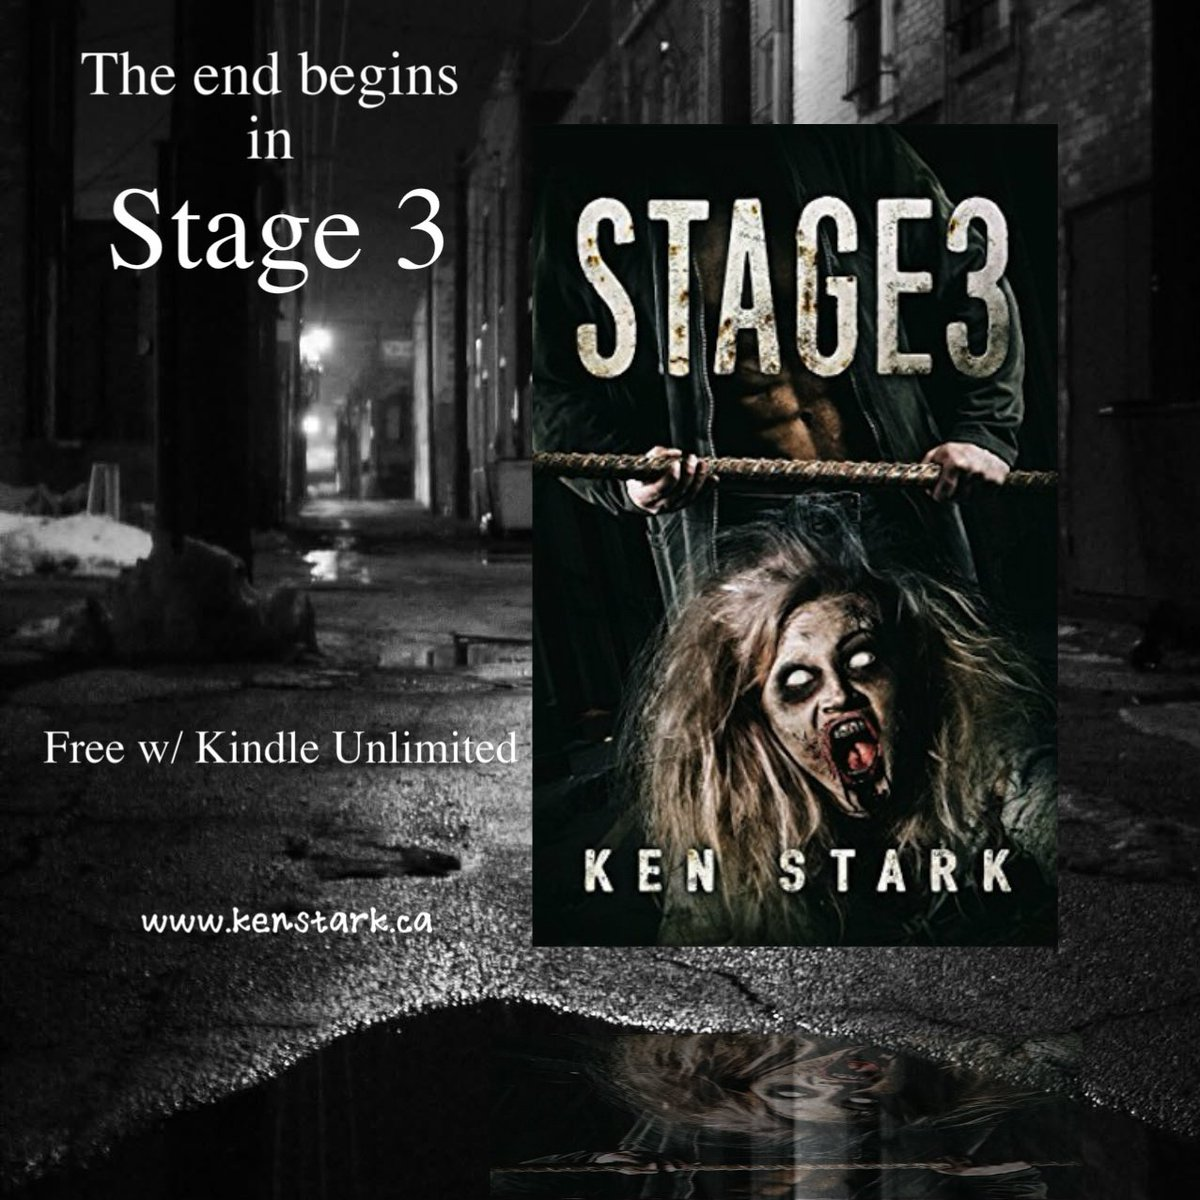 &quot;They&#39;re all around us, Mace. They&#39;re everywhere!&quot; #horror #zombie #suspense #thriller #FREE on #KindleUnlimited   https://www. amazon.com/Stage-Apocalyp tic-Thriller-Ken-Stark-ebook/dp/B01CYITYOS &nbsp; … <br>http://pic.twitter.com/jwAv8qelXk